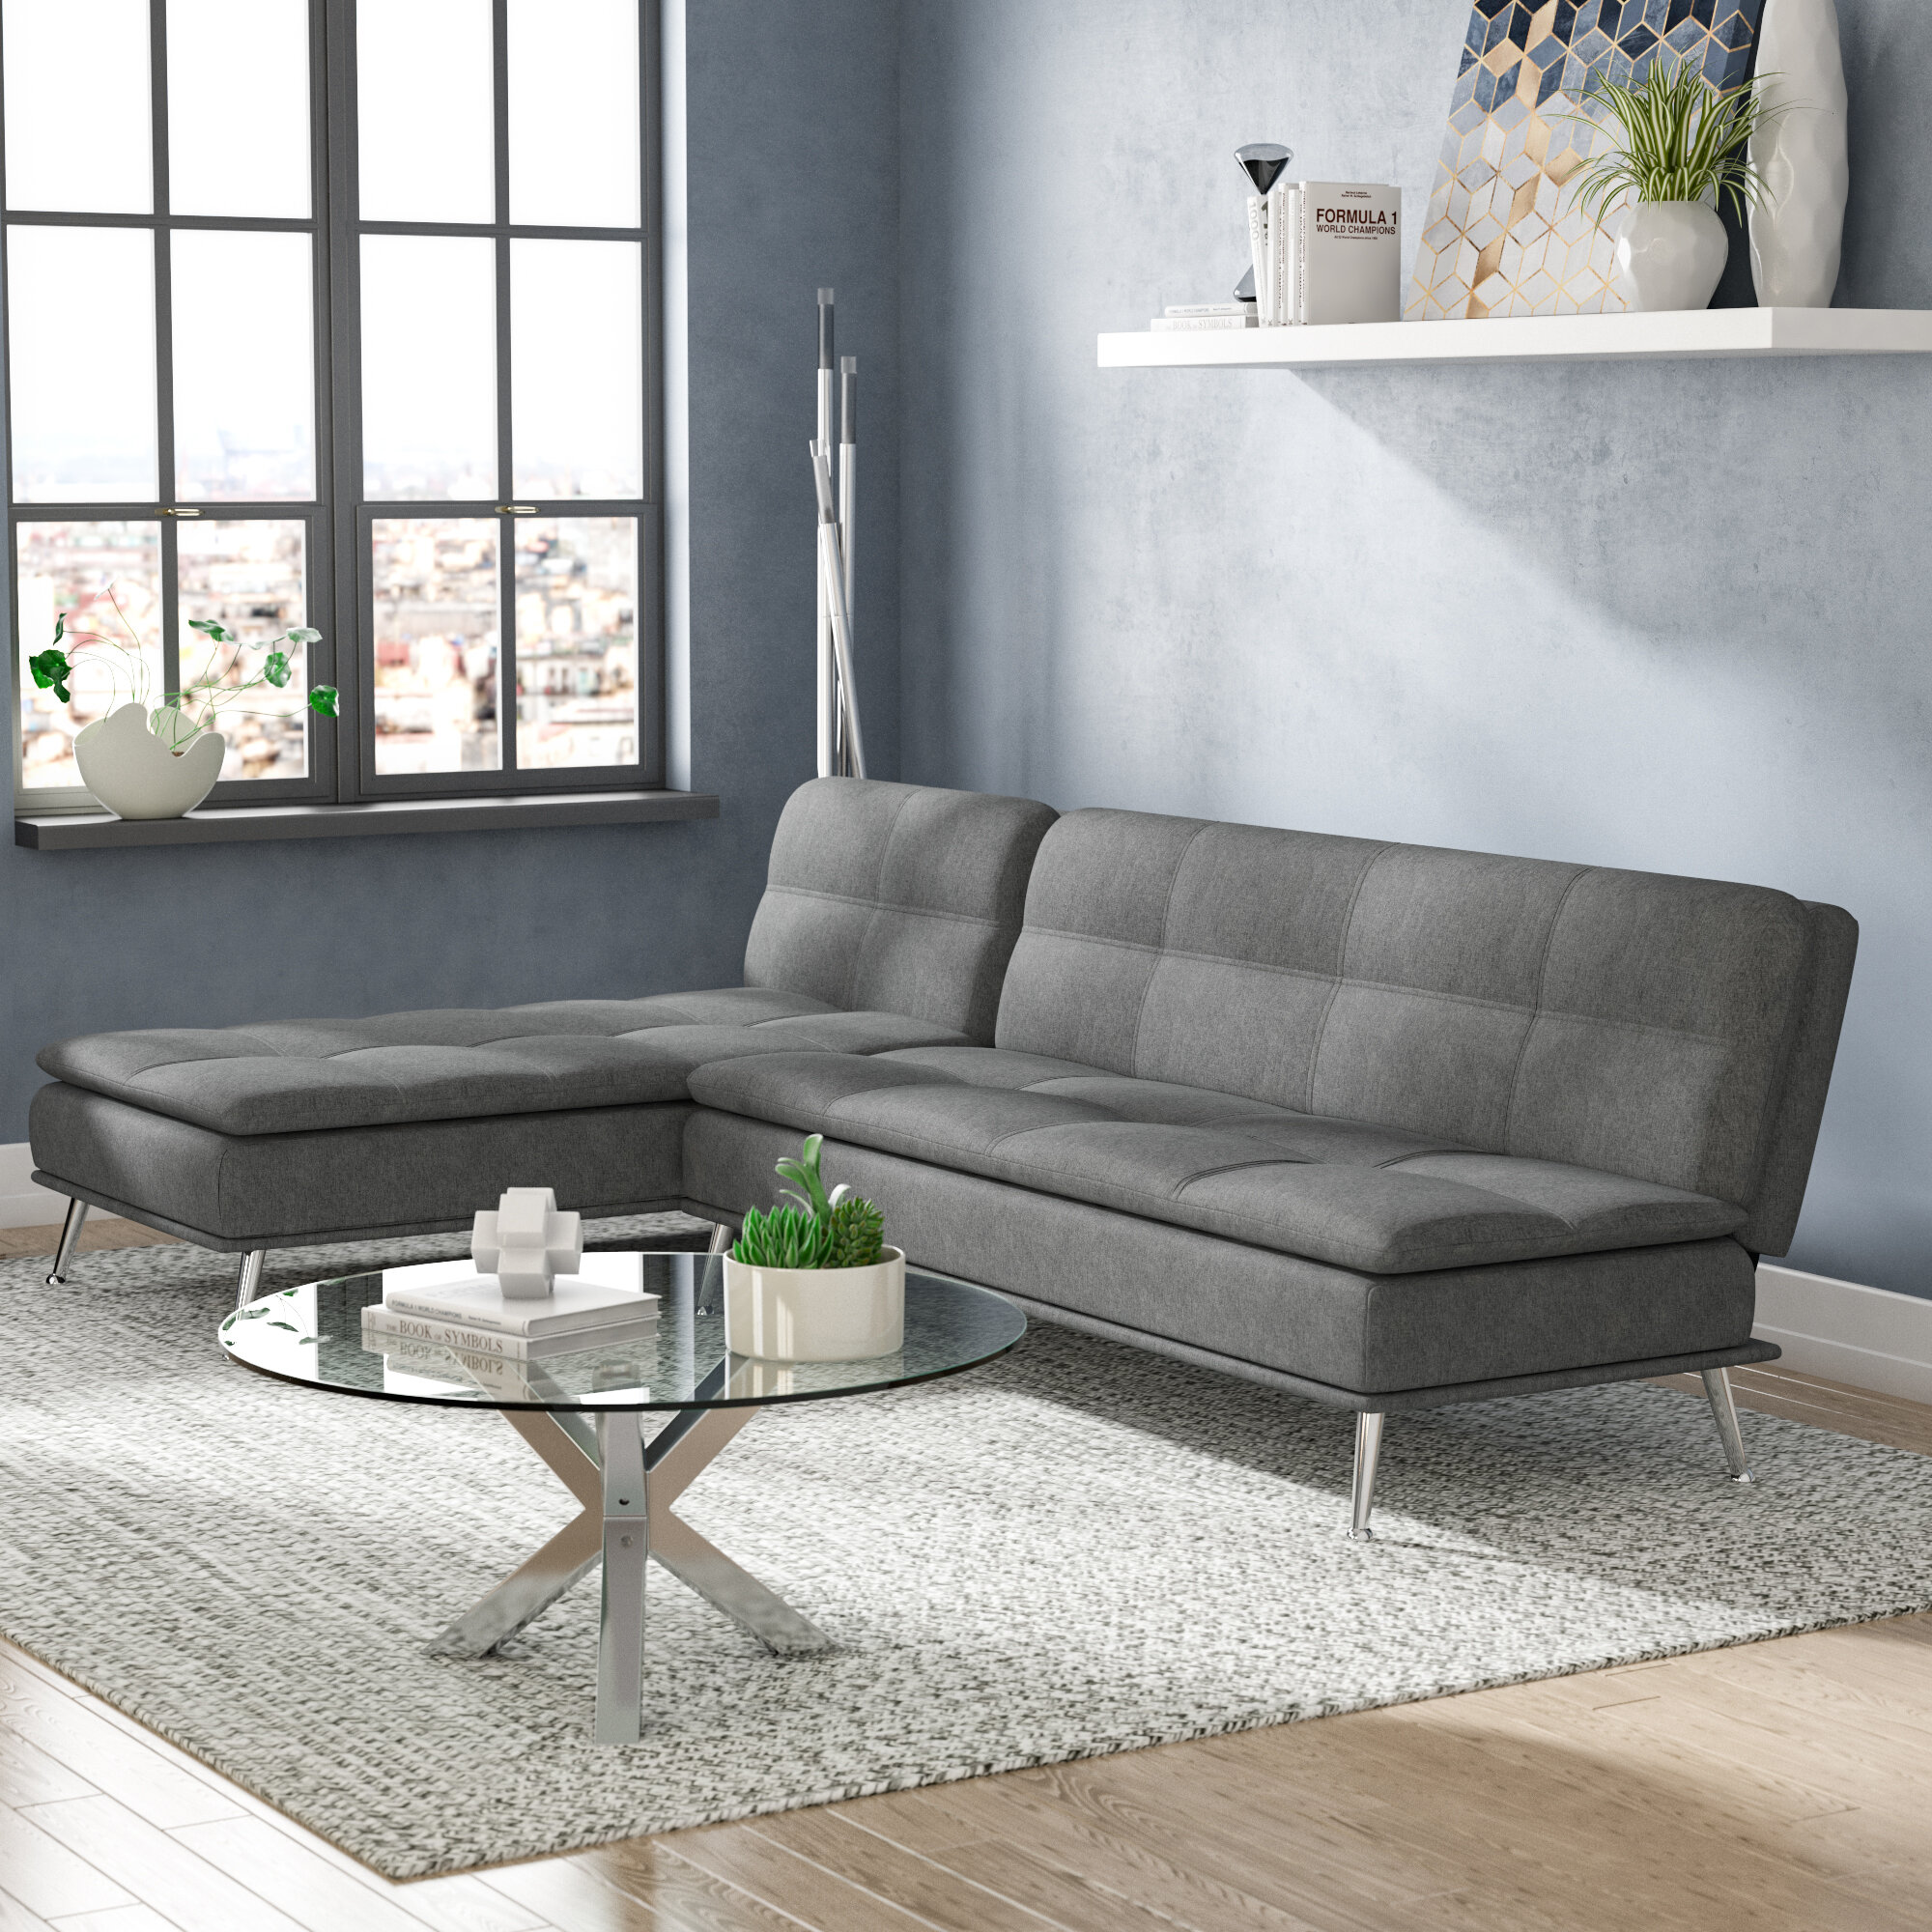 Peachy Rasco Reversible Sleeper Sofa Bed Pabps2019 Chair Design Images Pabps2019Com